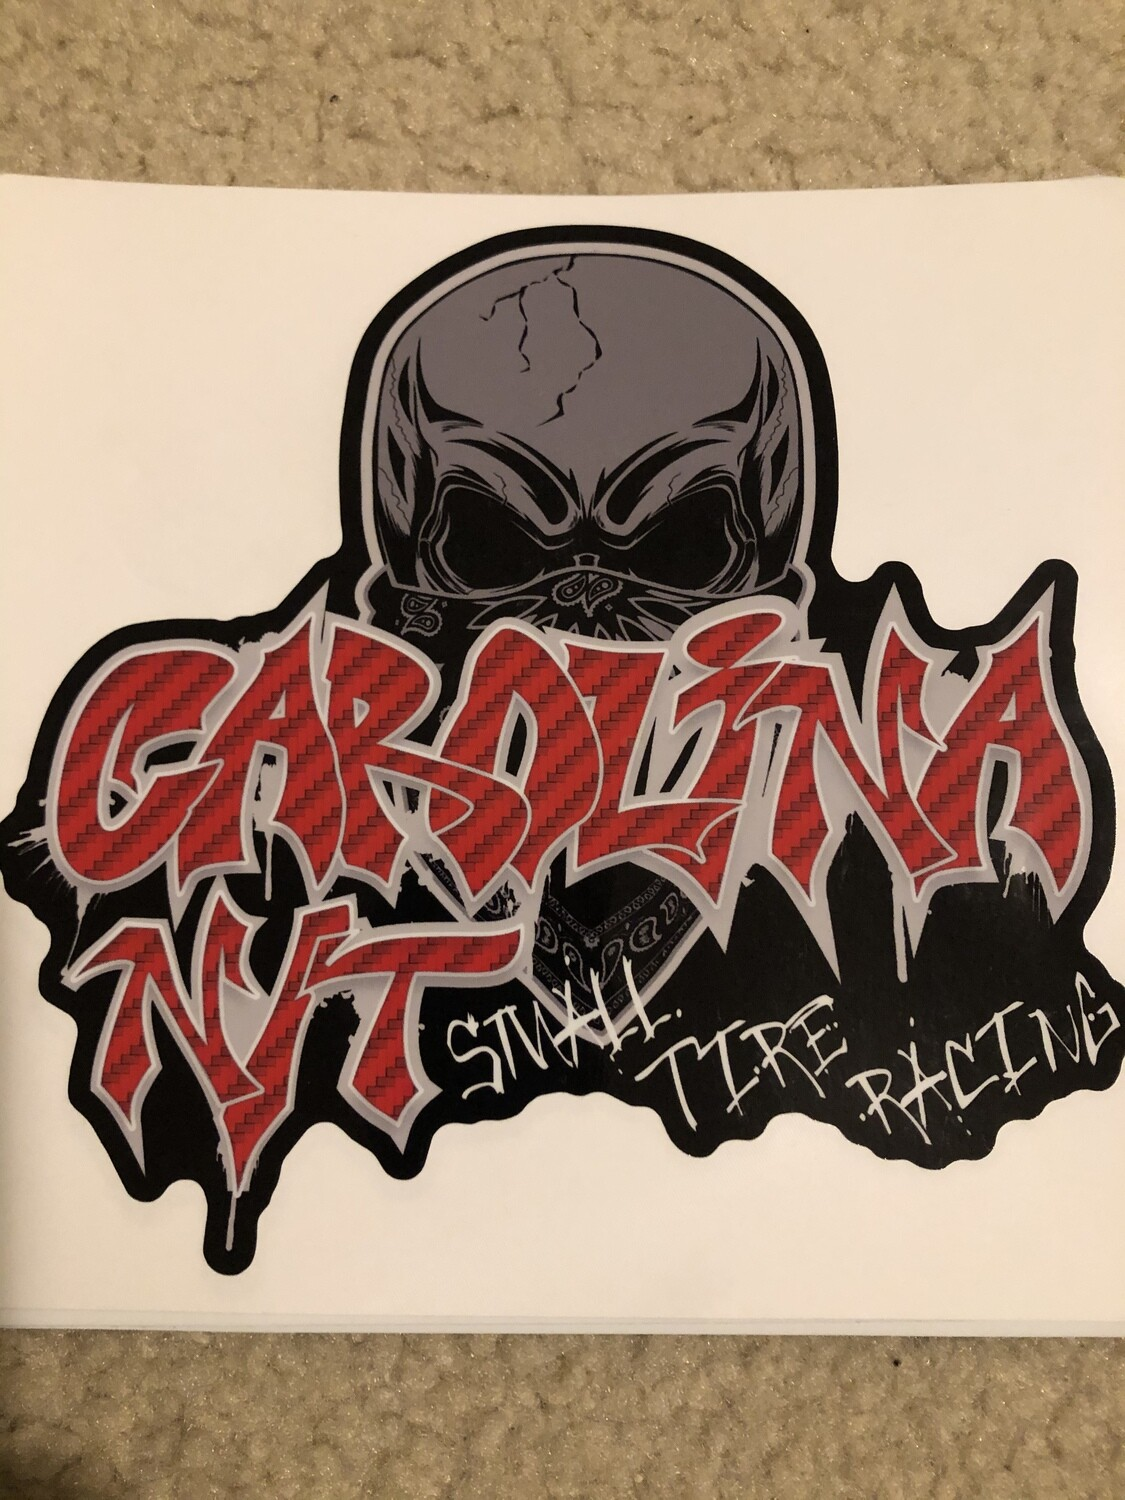 2020 Graffiti Red Letters Decal